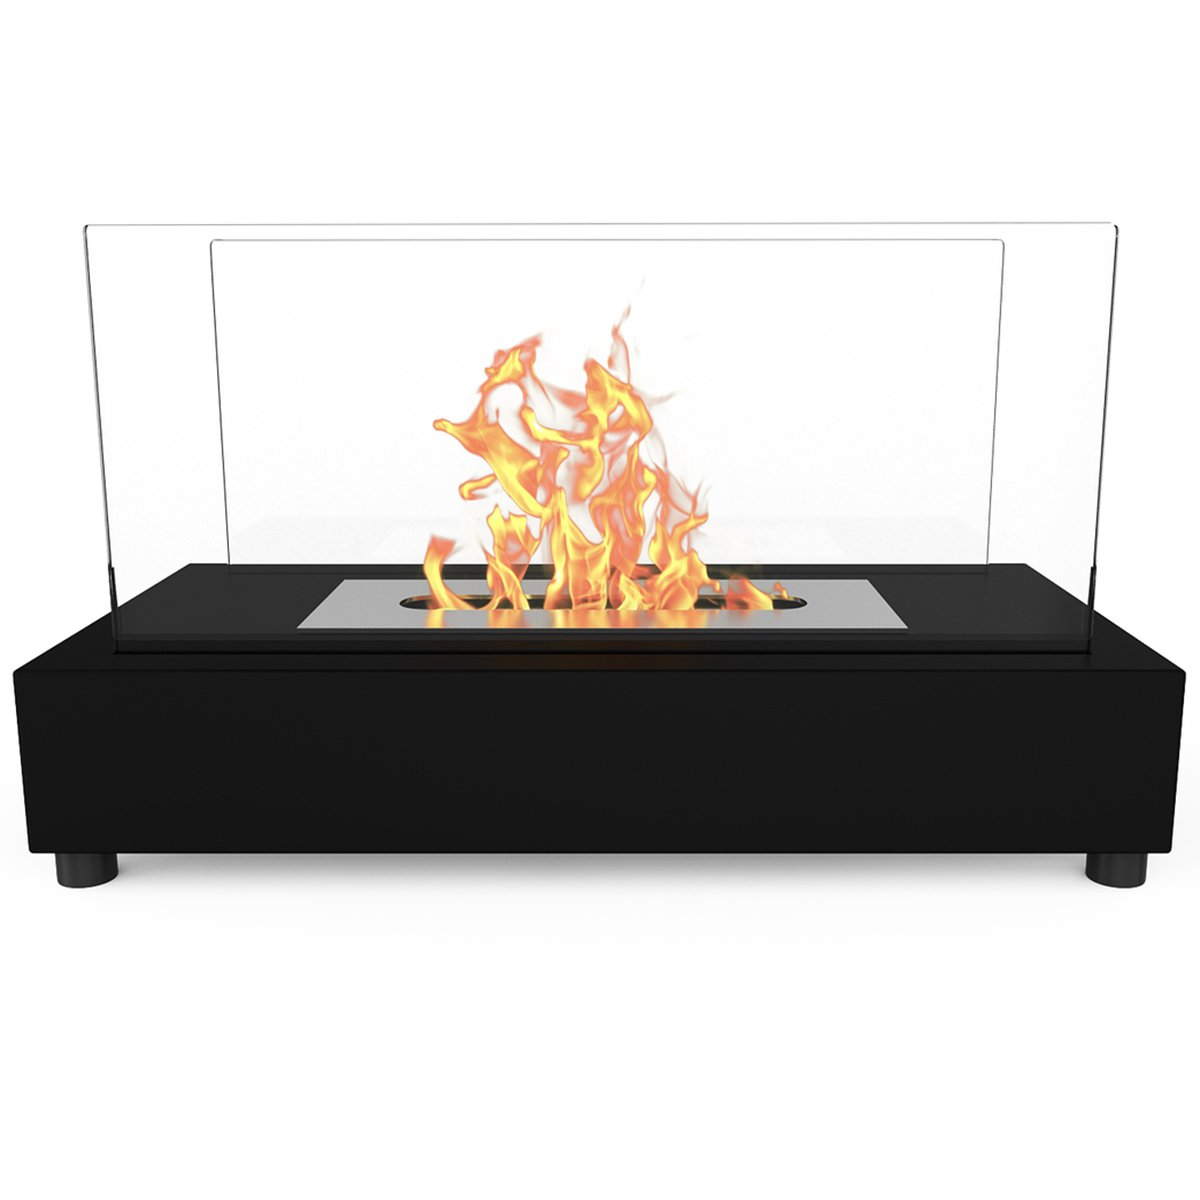 buy regal flame avon ventless indoor outdoor fire pit tabletop rh guide alibaba com portable indoor/outdoor gel fuel fireplace